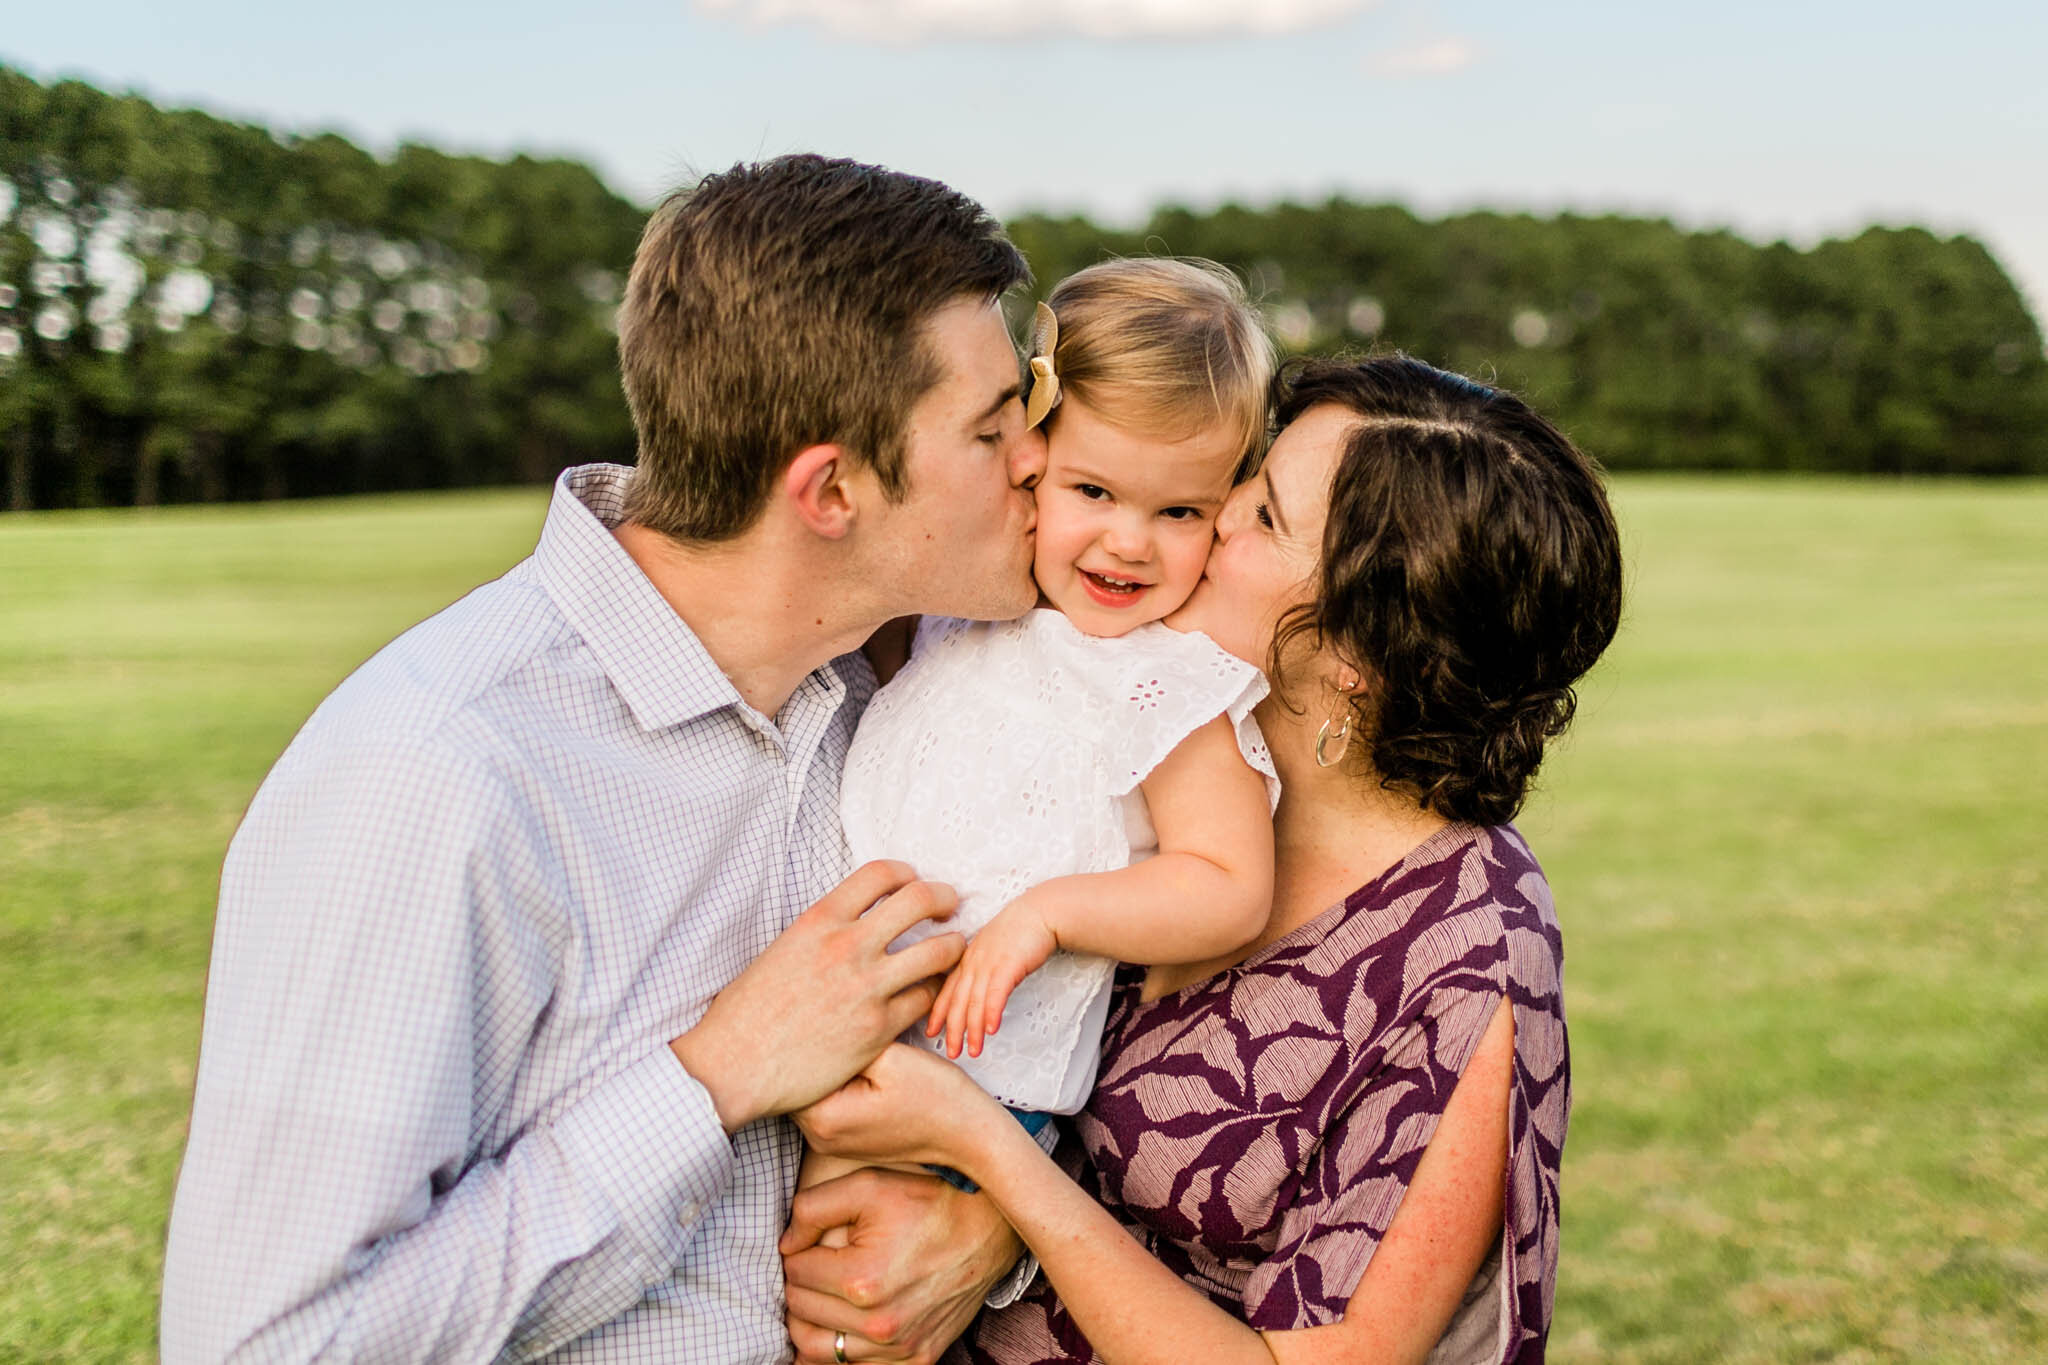 Parents kissing daughter on cheeks | Outdoor family portrait at Dix Park | Raleigh Family Photographer | By G. Lin Photogrpahy